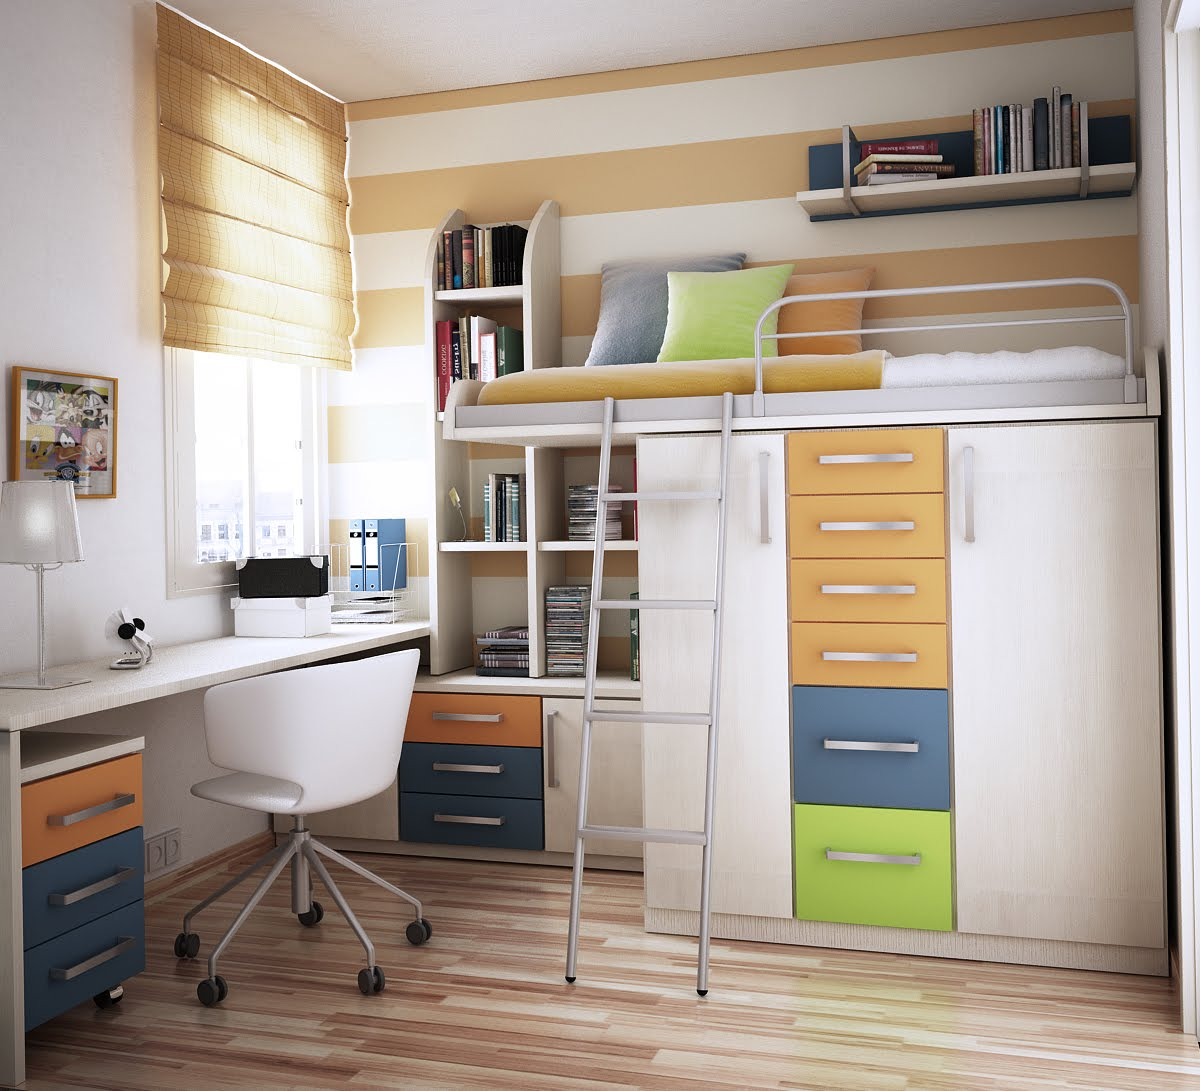 Loft Bed With Closet Underneath: Bed With Drawers. Modern Design